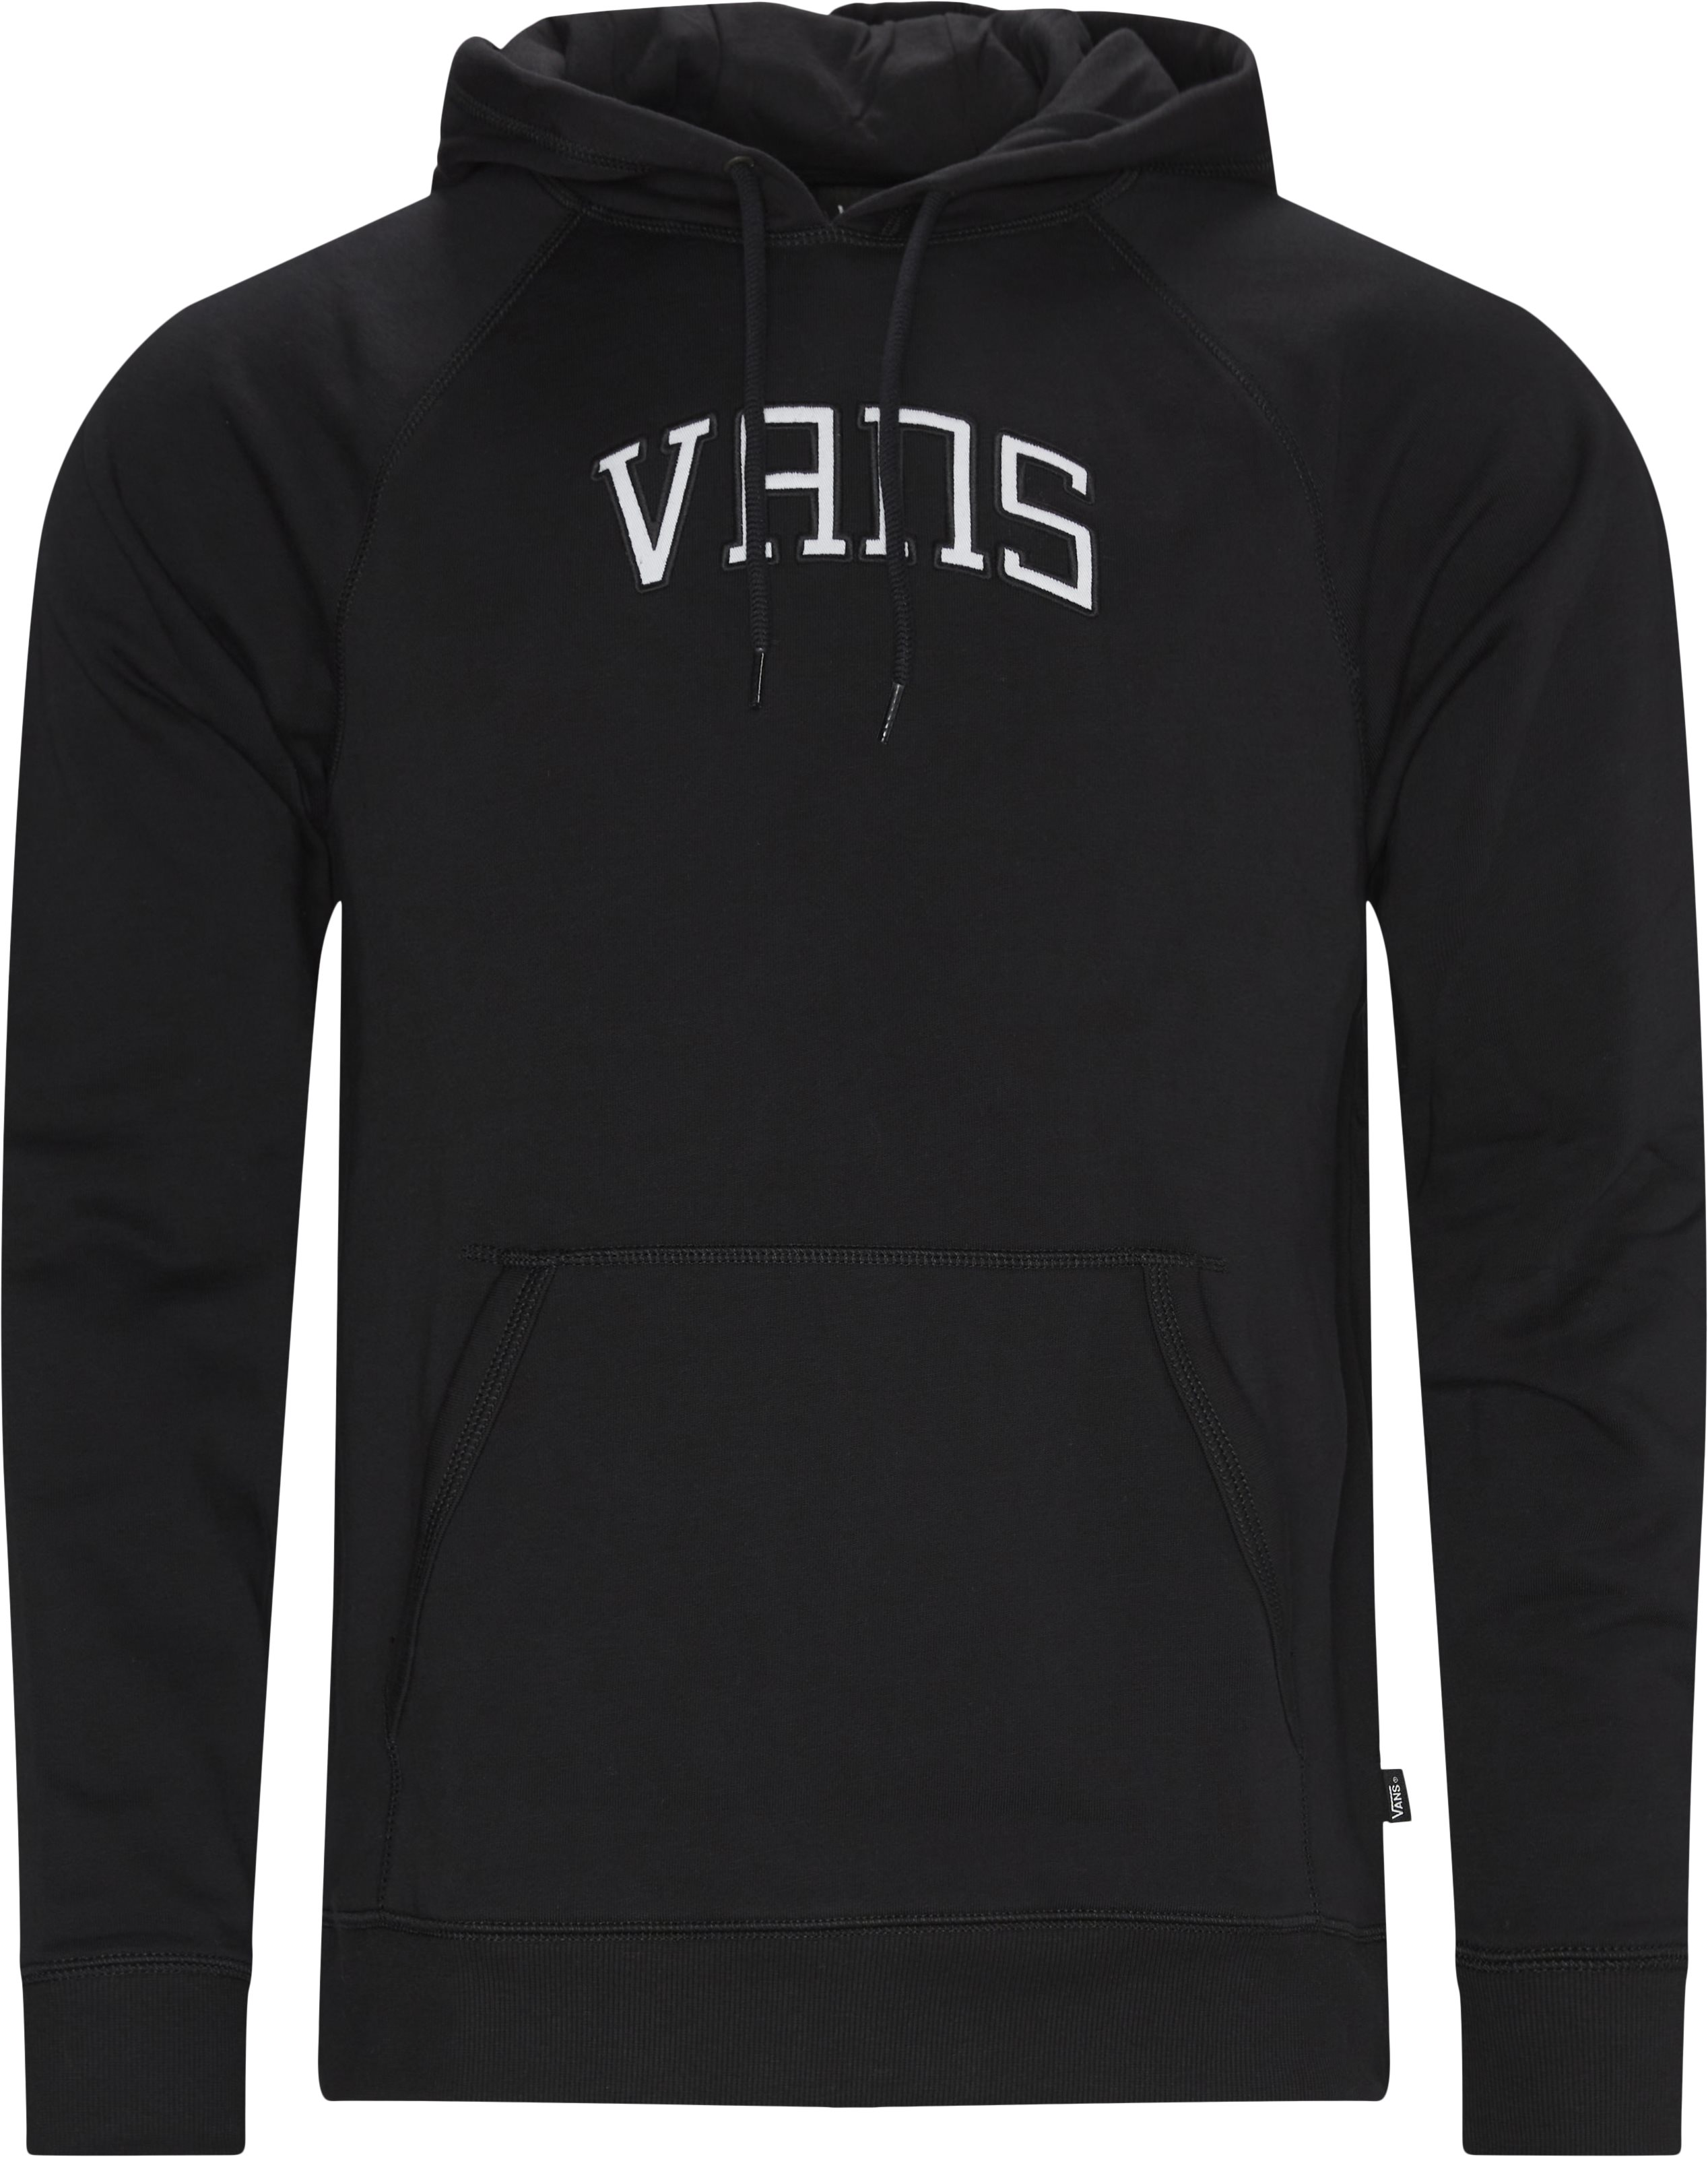 Versa Standard Hoodie - Sweatshirts - Regular - Black